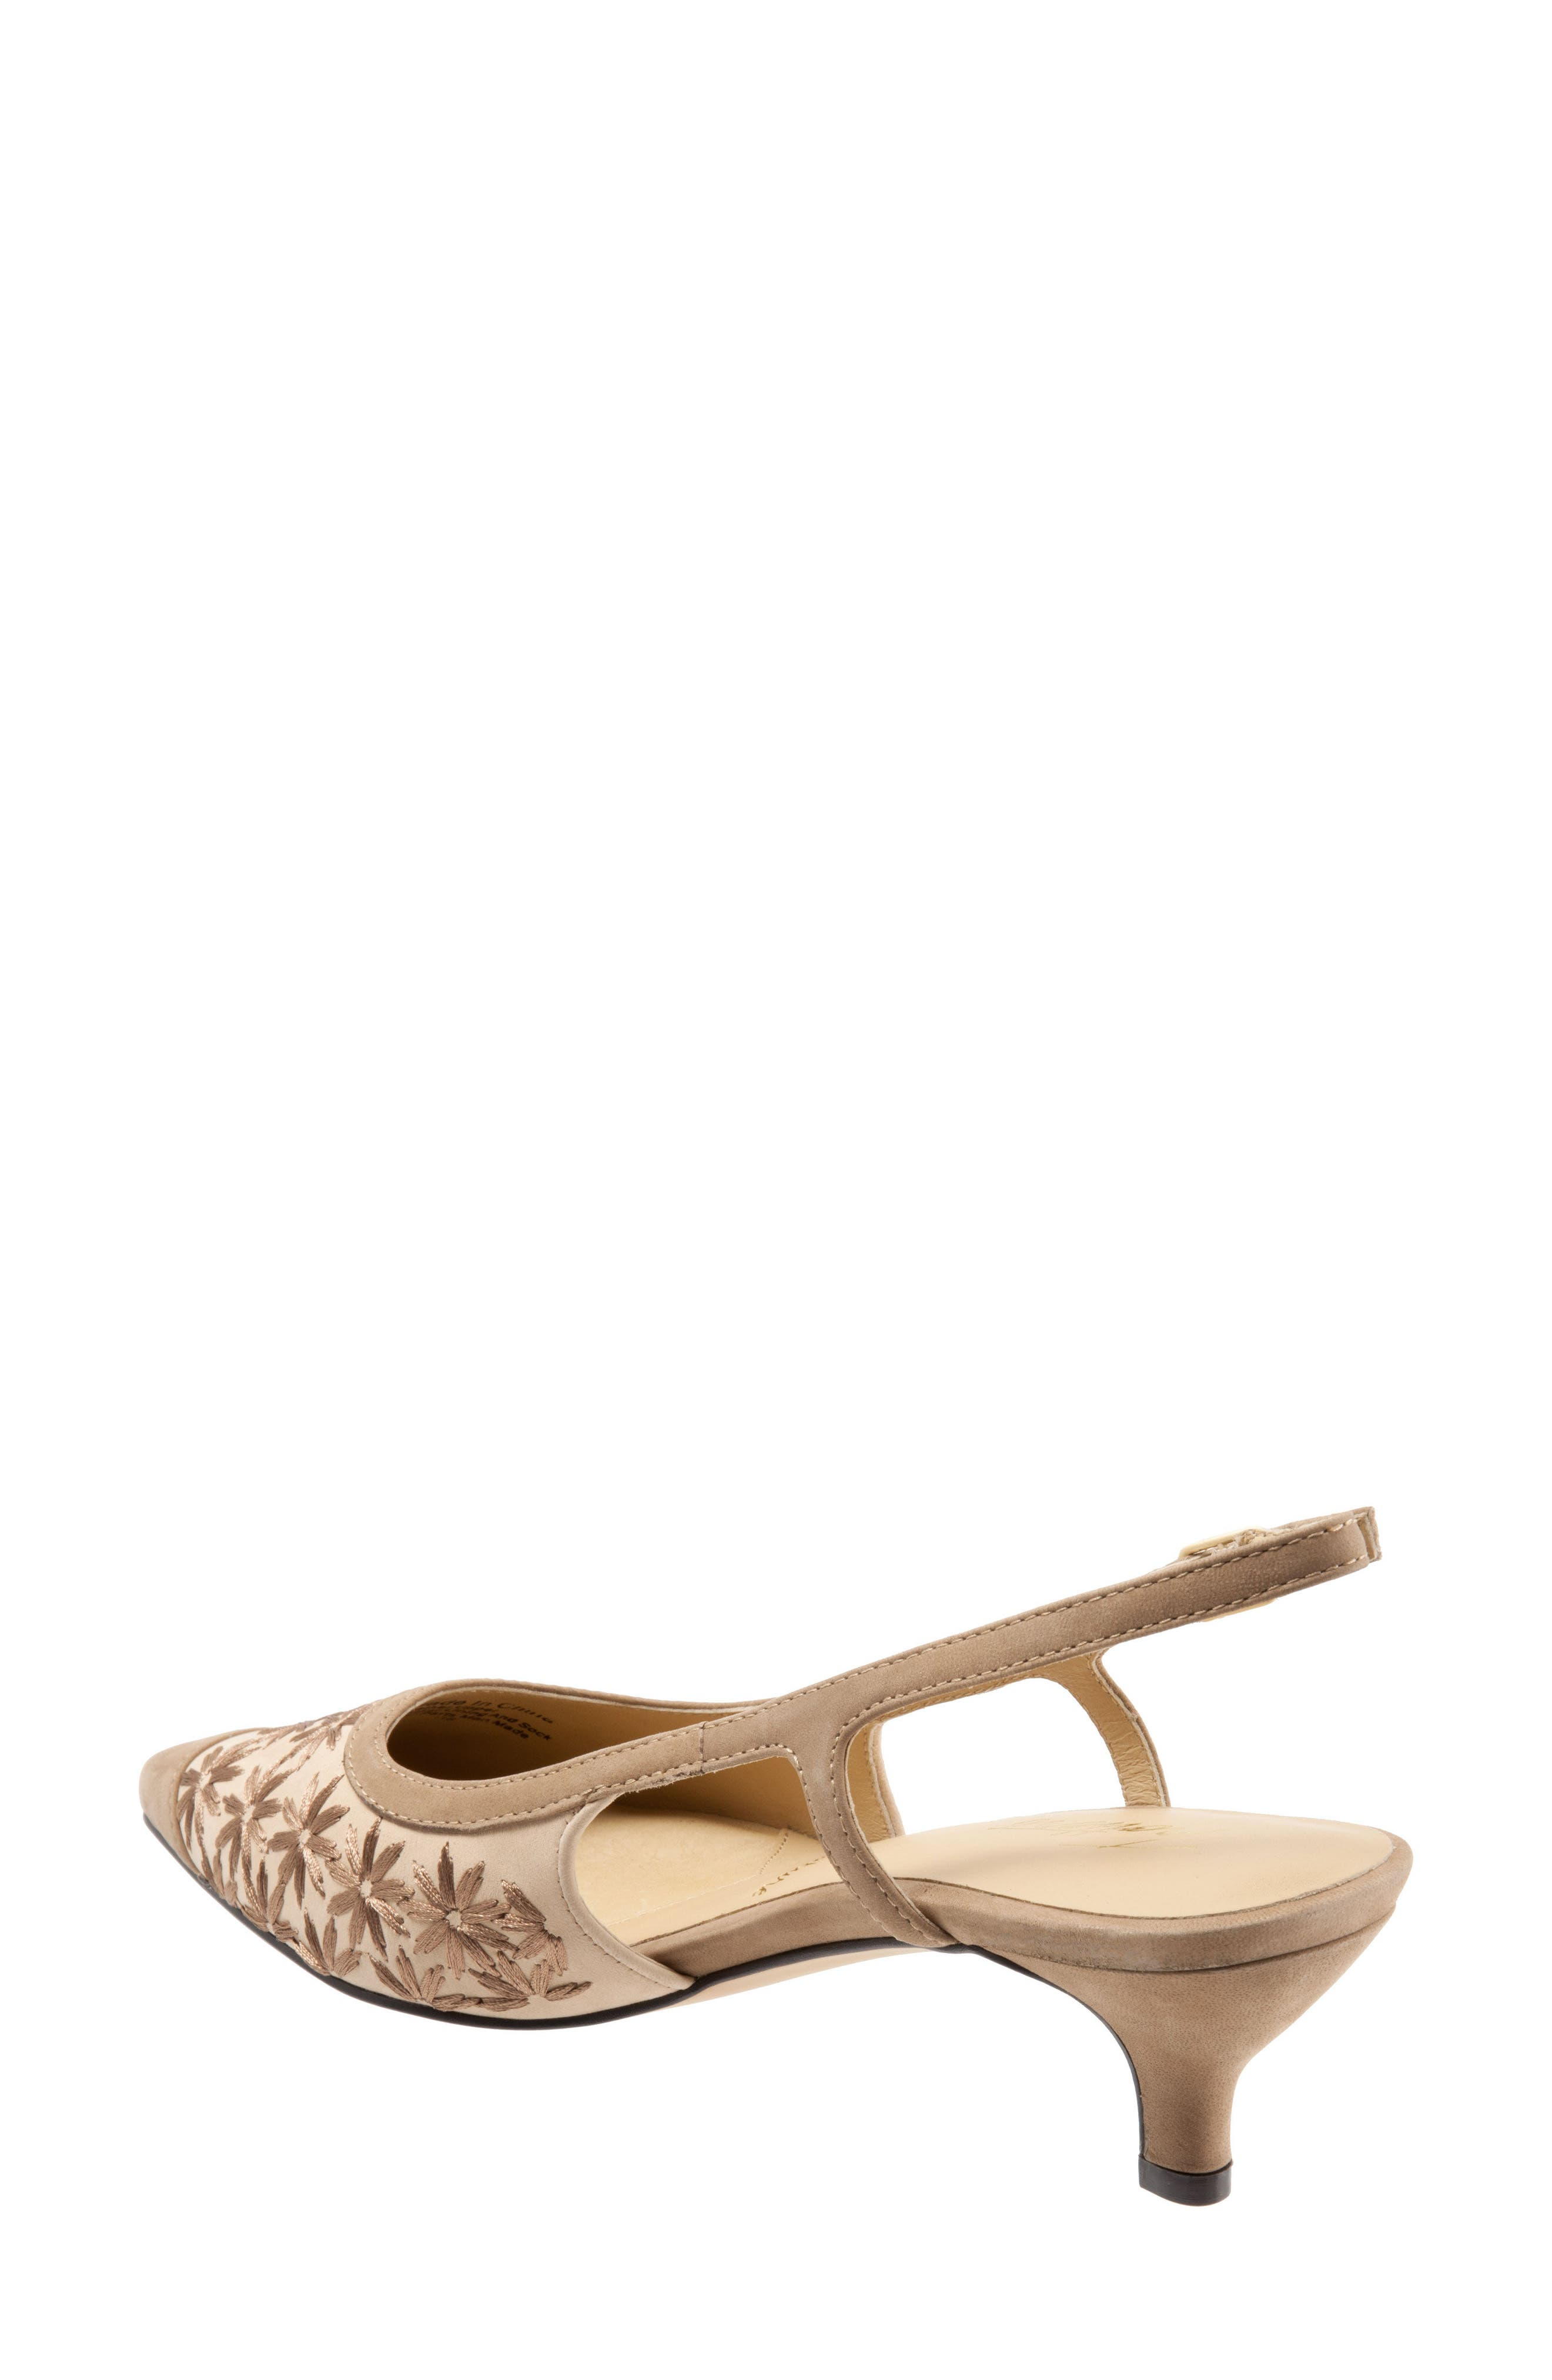 'Kimberly' Woven Leather Slingback Pump,                             Alternate thumbnail 2, color,                             Dark Tan/ Sand/ Bronze Leather